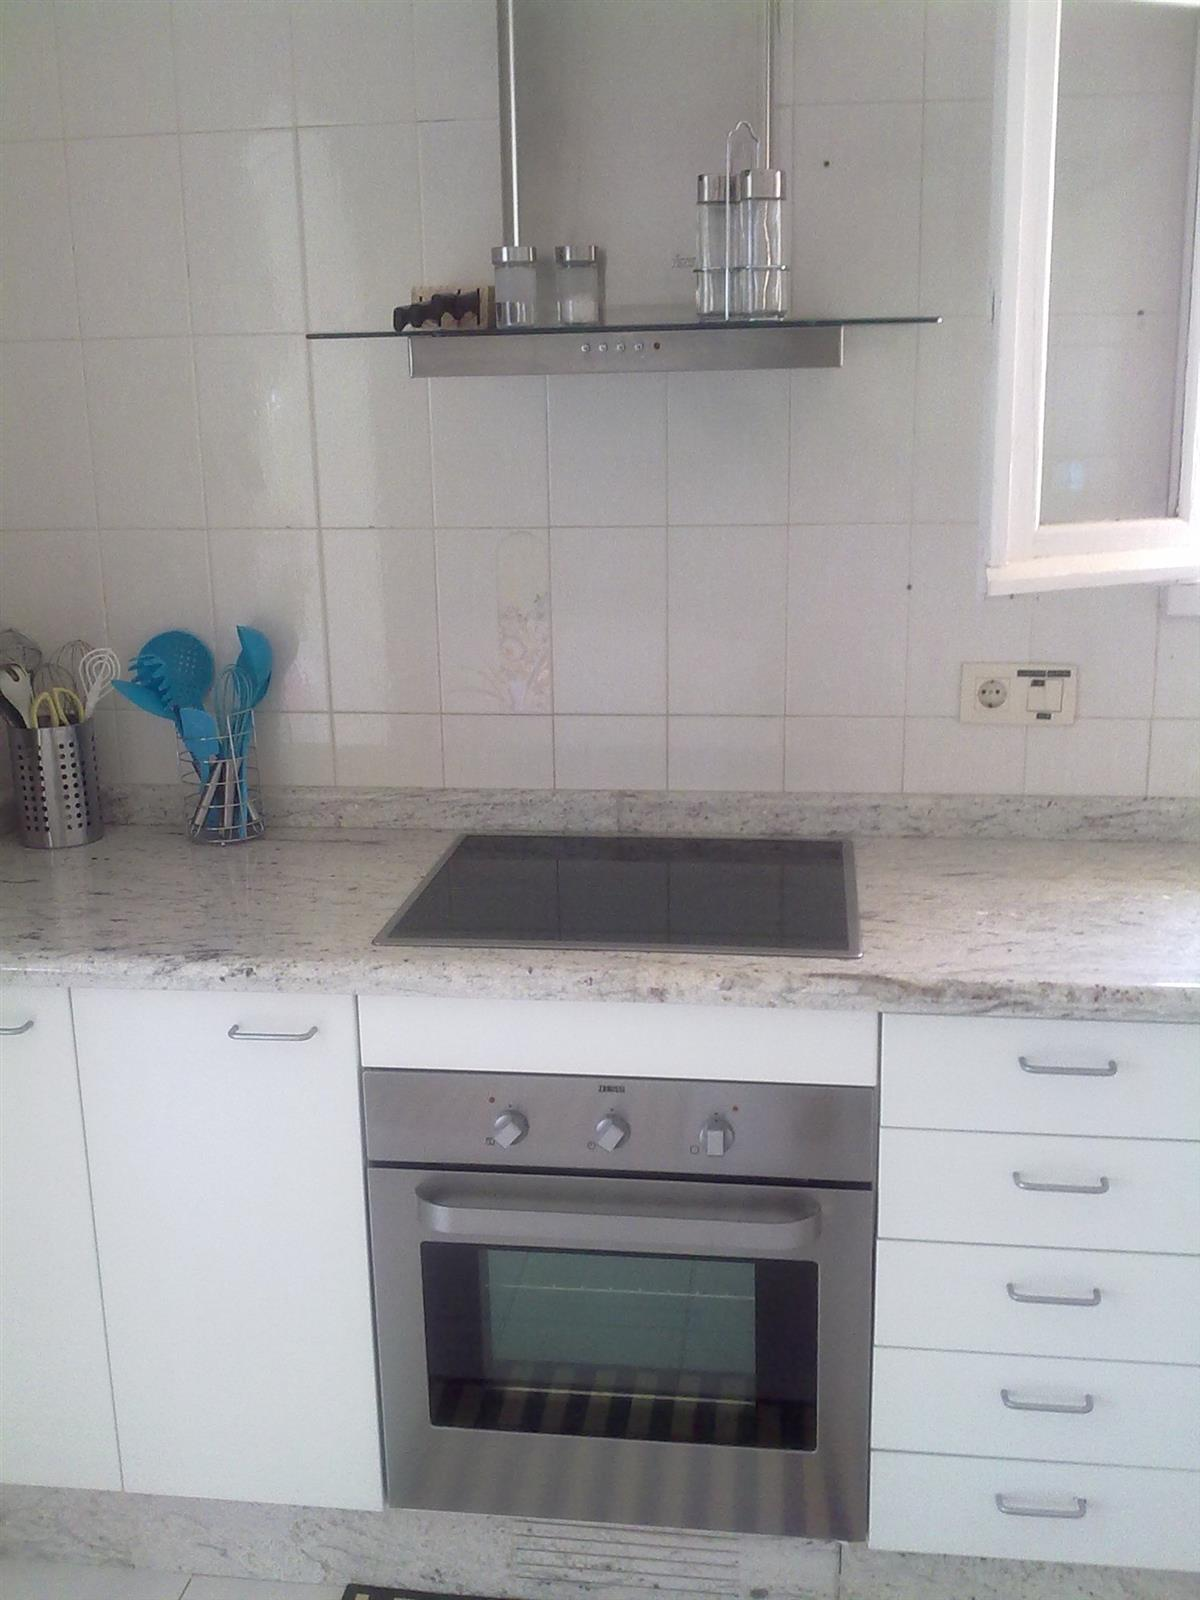 Or new kitchen - new granite, exhaust, oven and sink, new cubbards